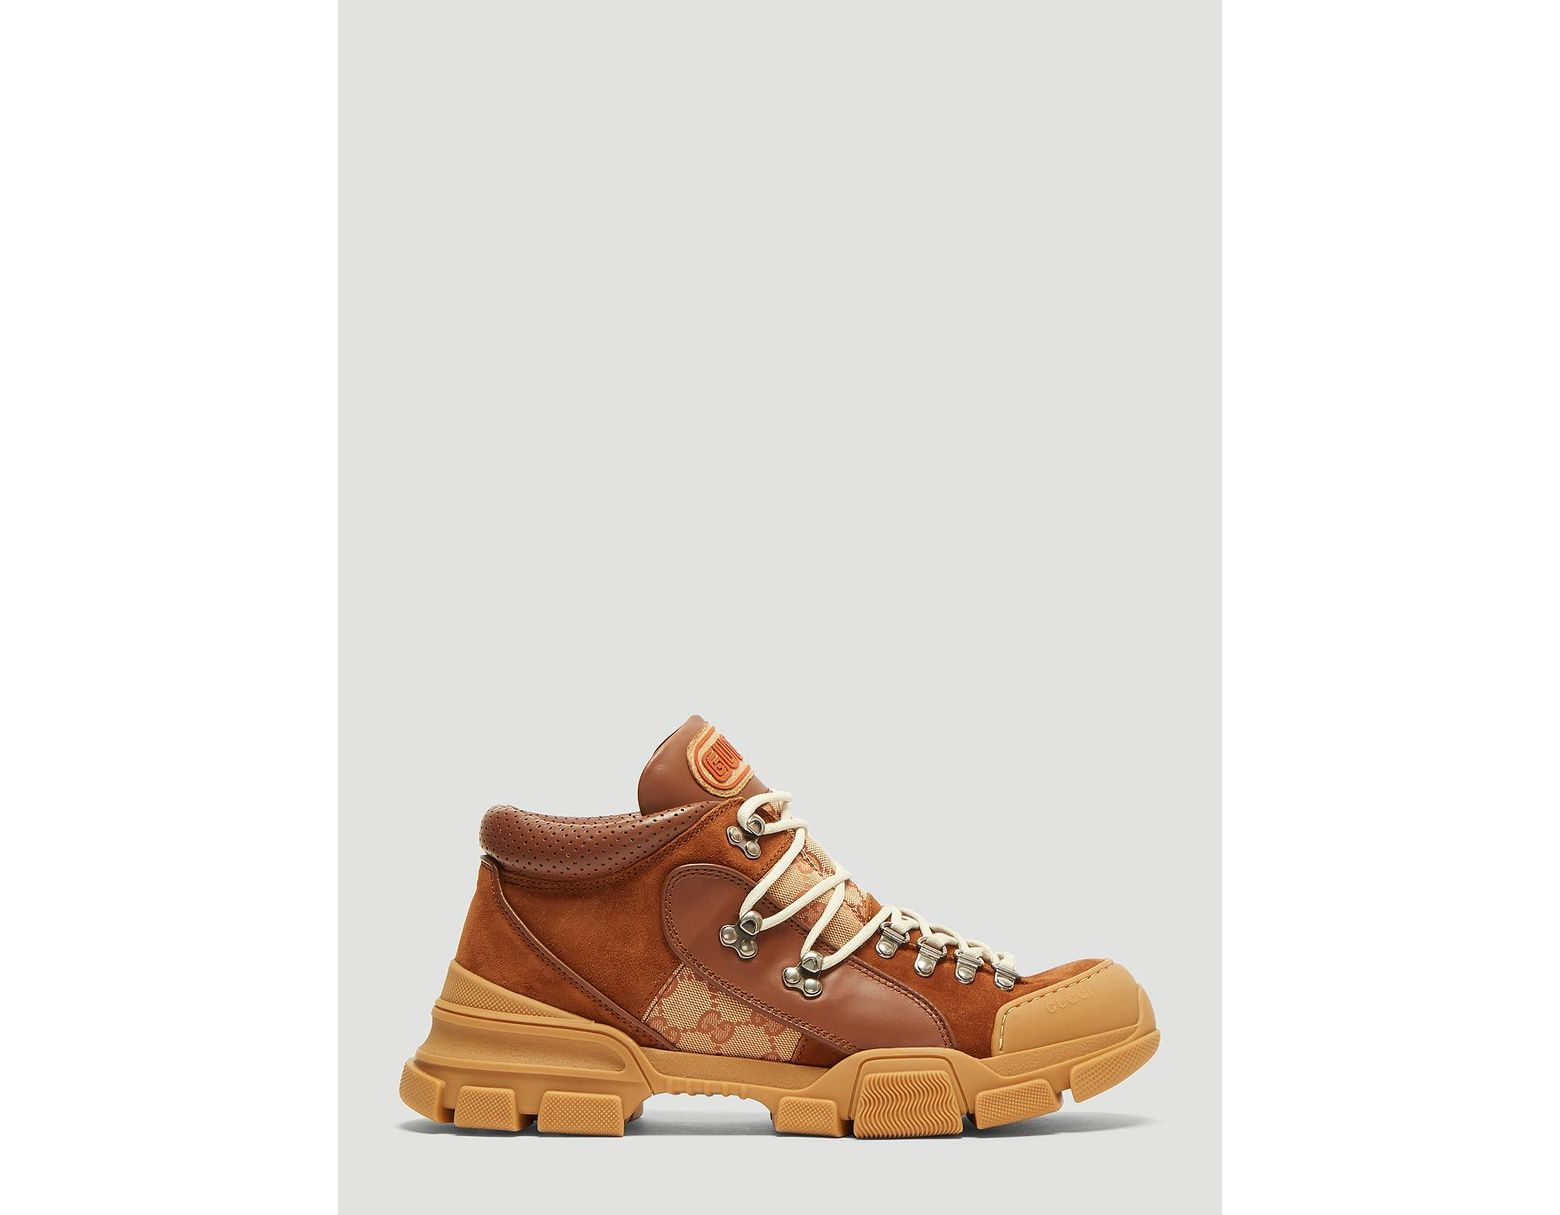 6d7d38f11 Gucci Leather And Original GG High-top Sneaker in Brown for Men - Save 40%  - Lyst